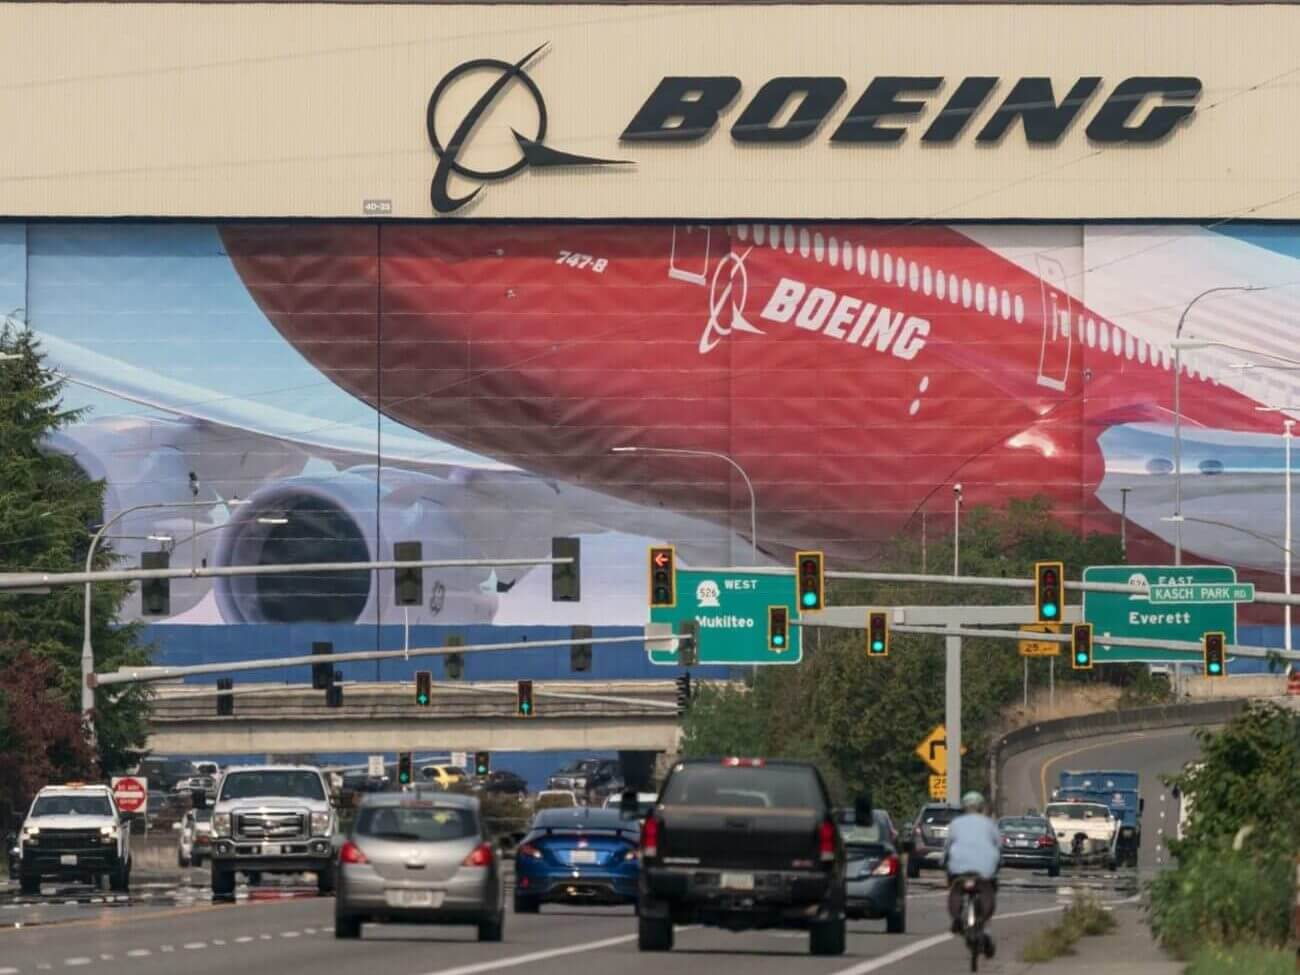 Boeing Is the Newest Company to Trail a Hostile Industry Atmosphere